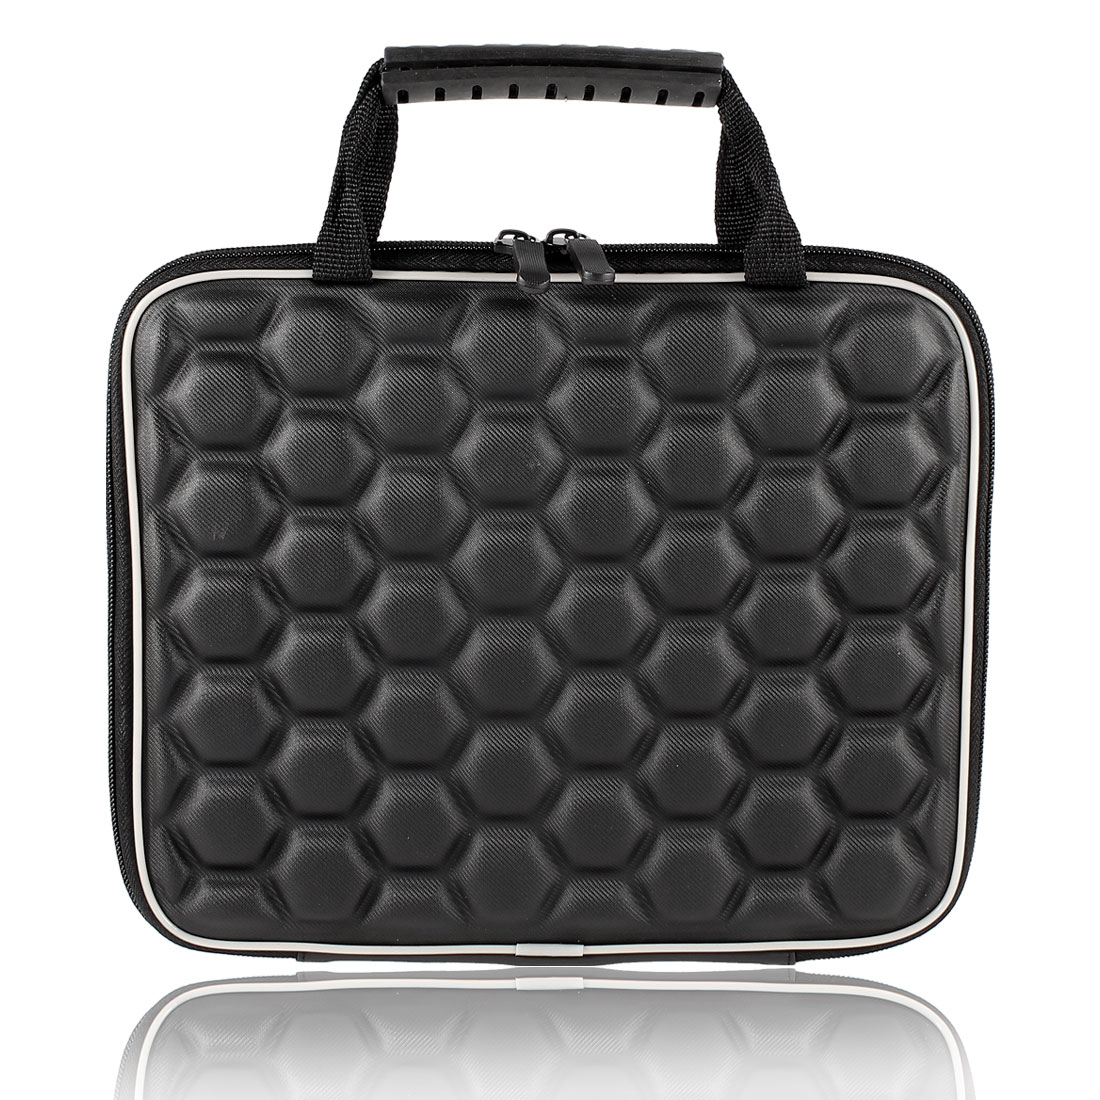 "10"",10.1"",10.2"" Shockproof Notebook Laptop Sleeve Carrying Bag Black"